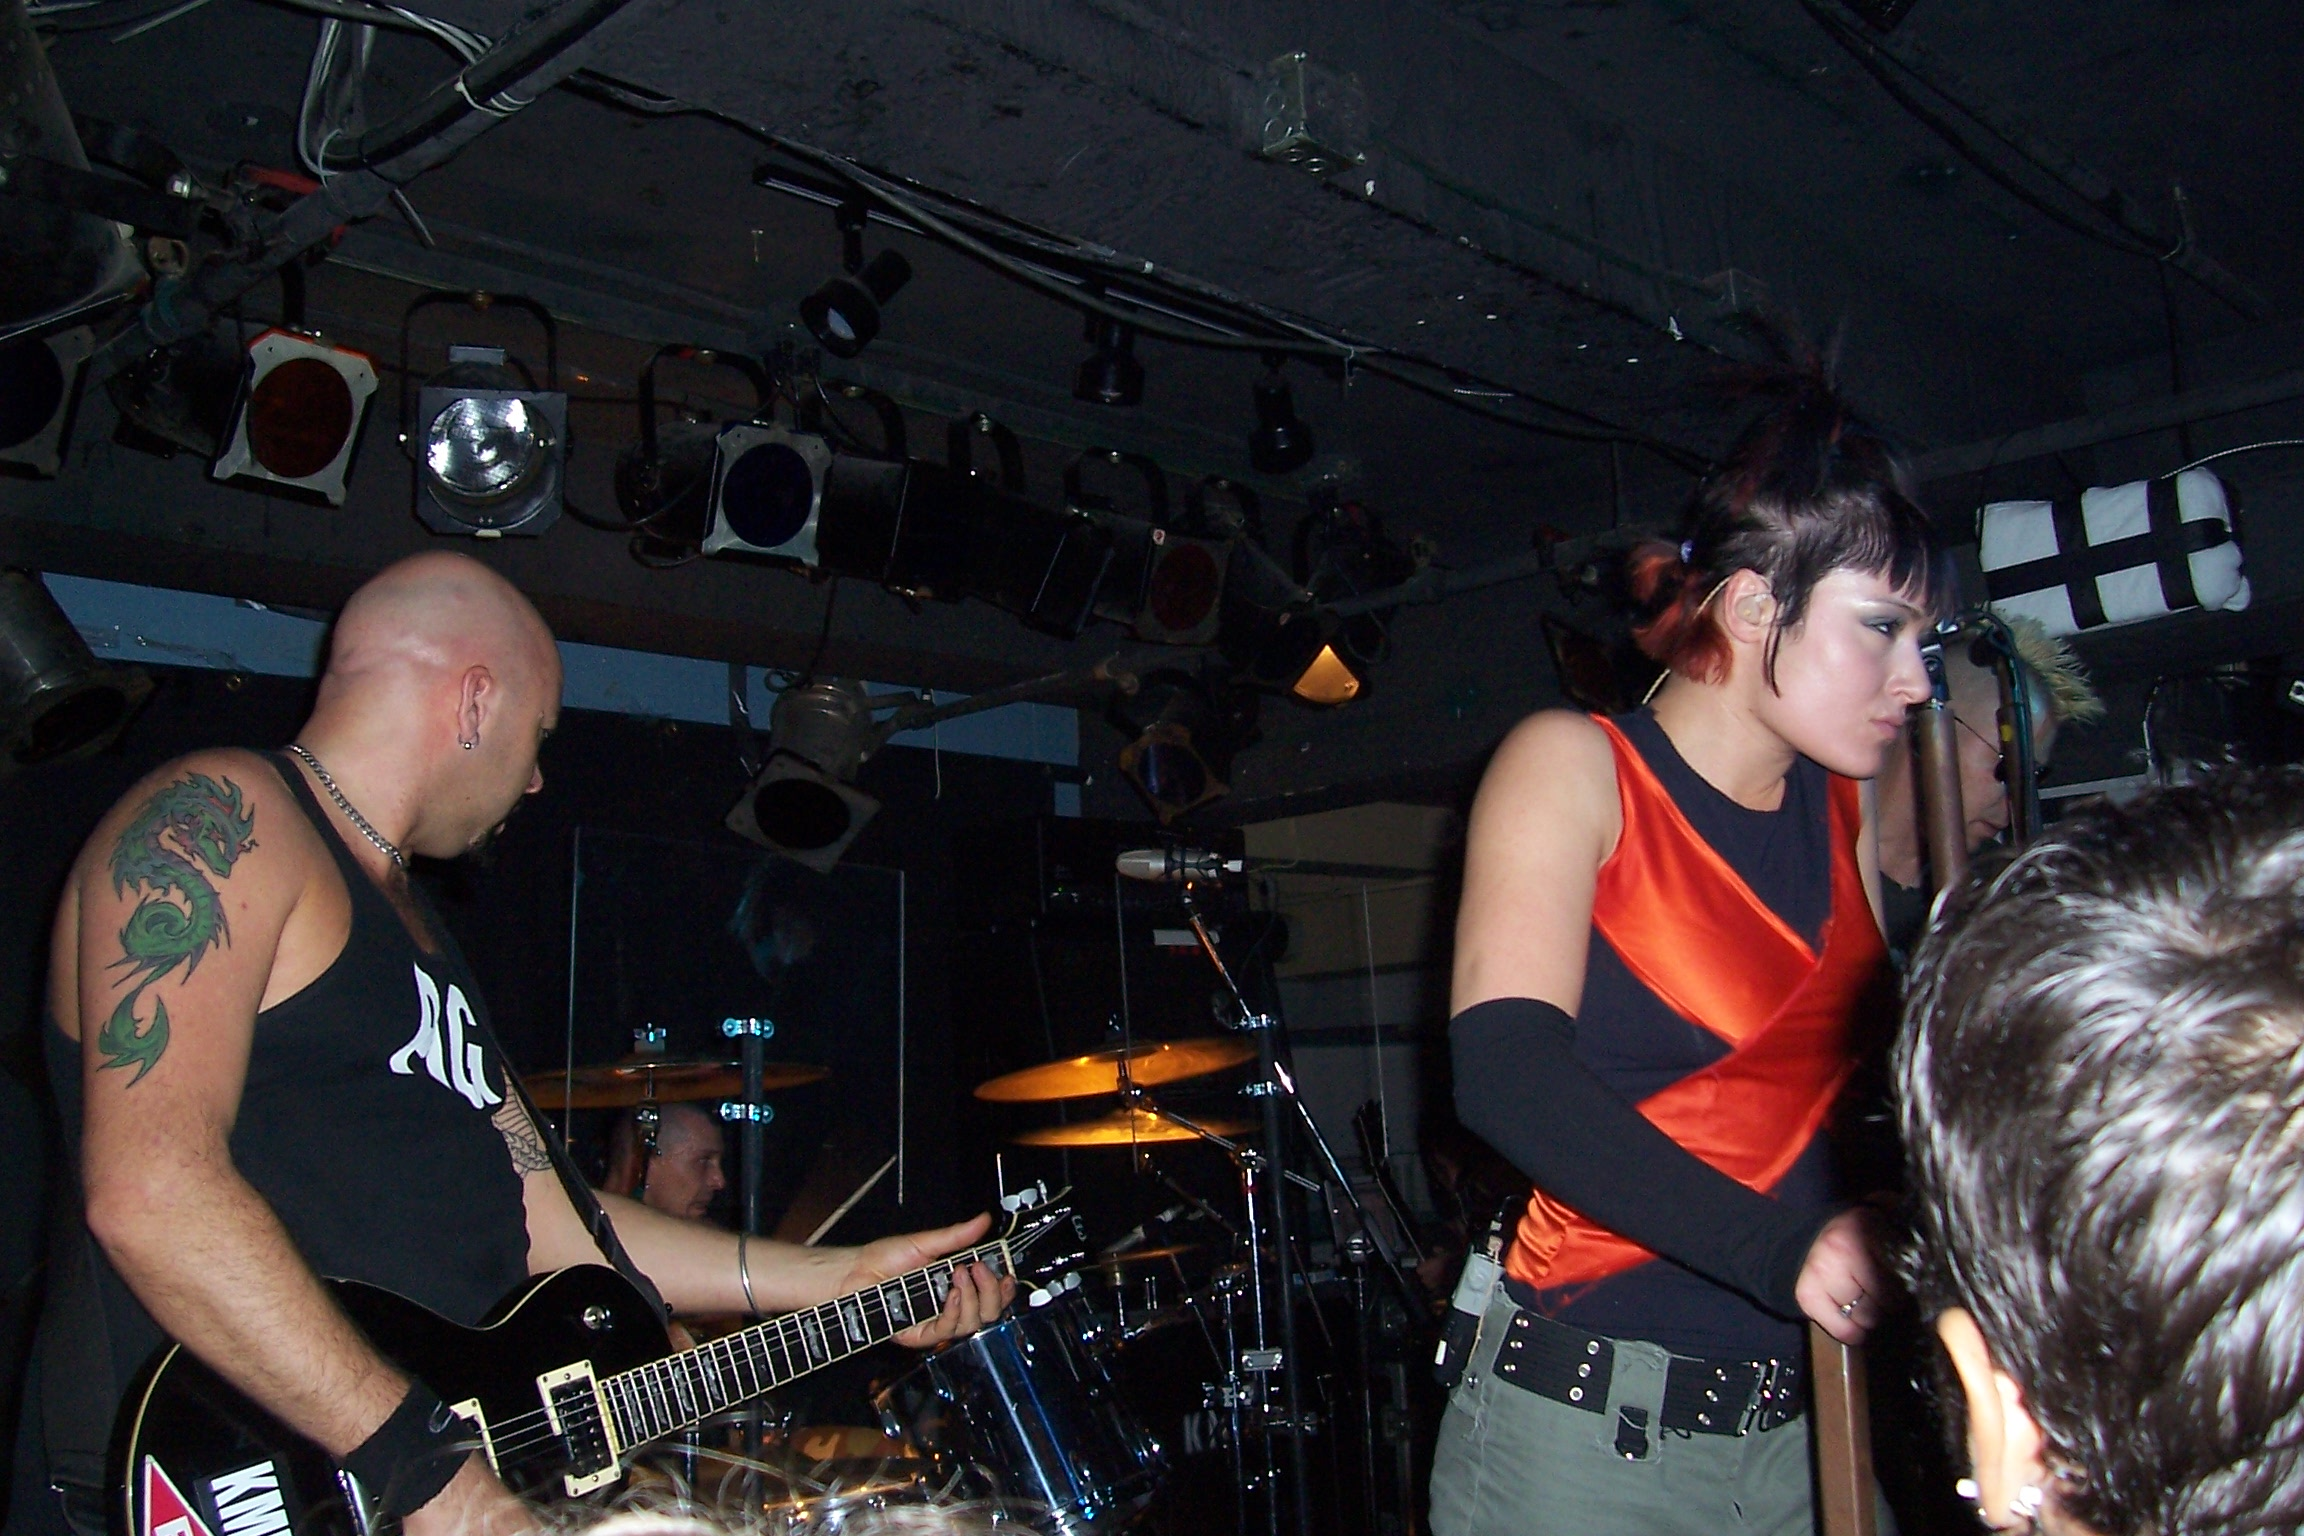 Depiction of KMFDM